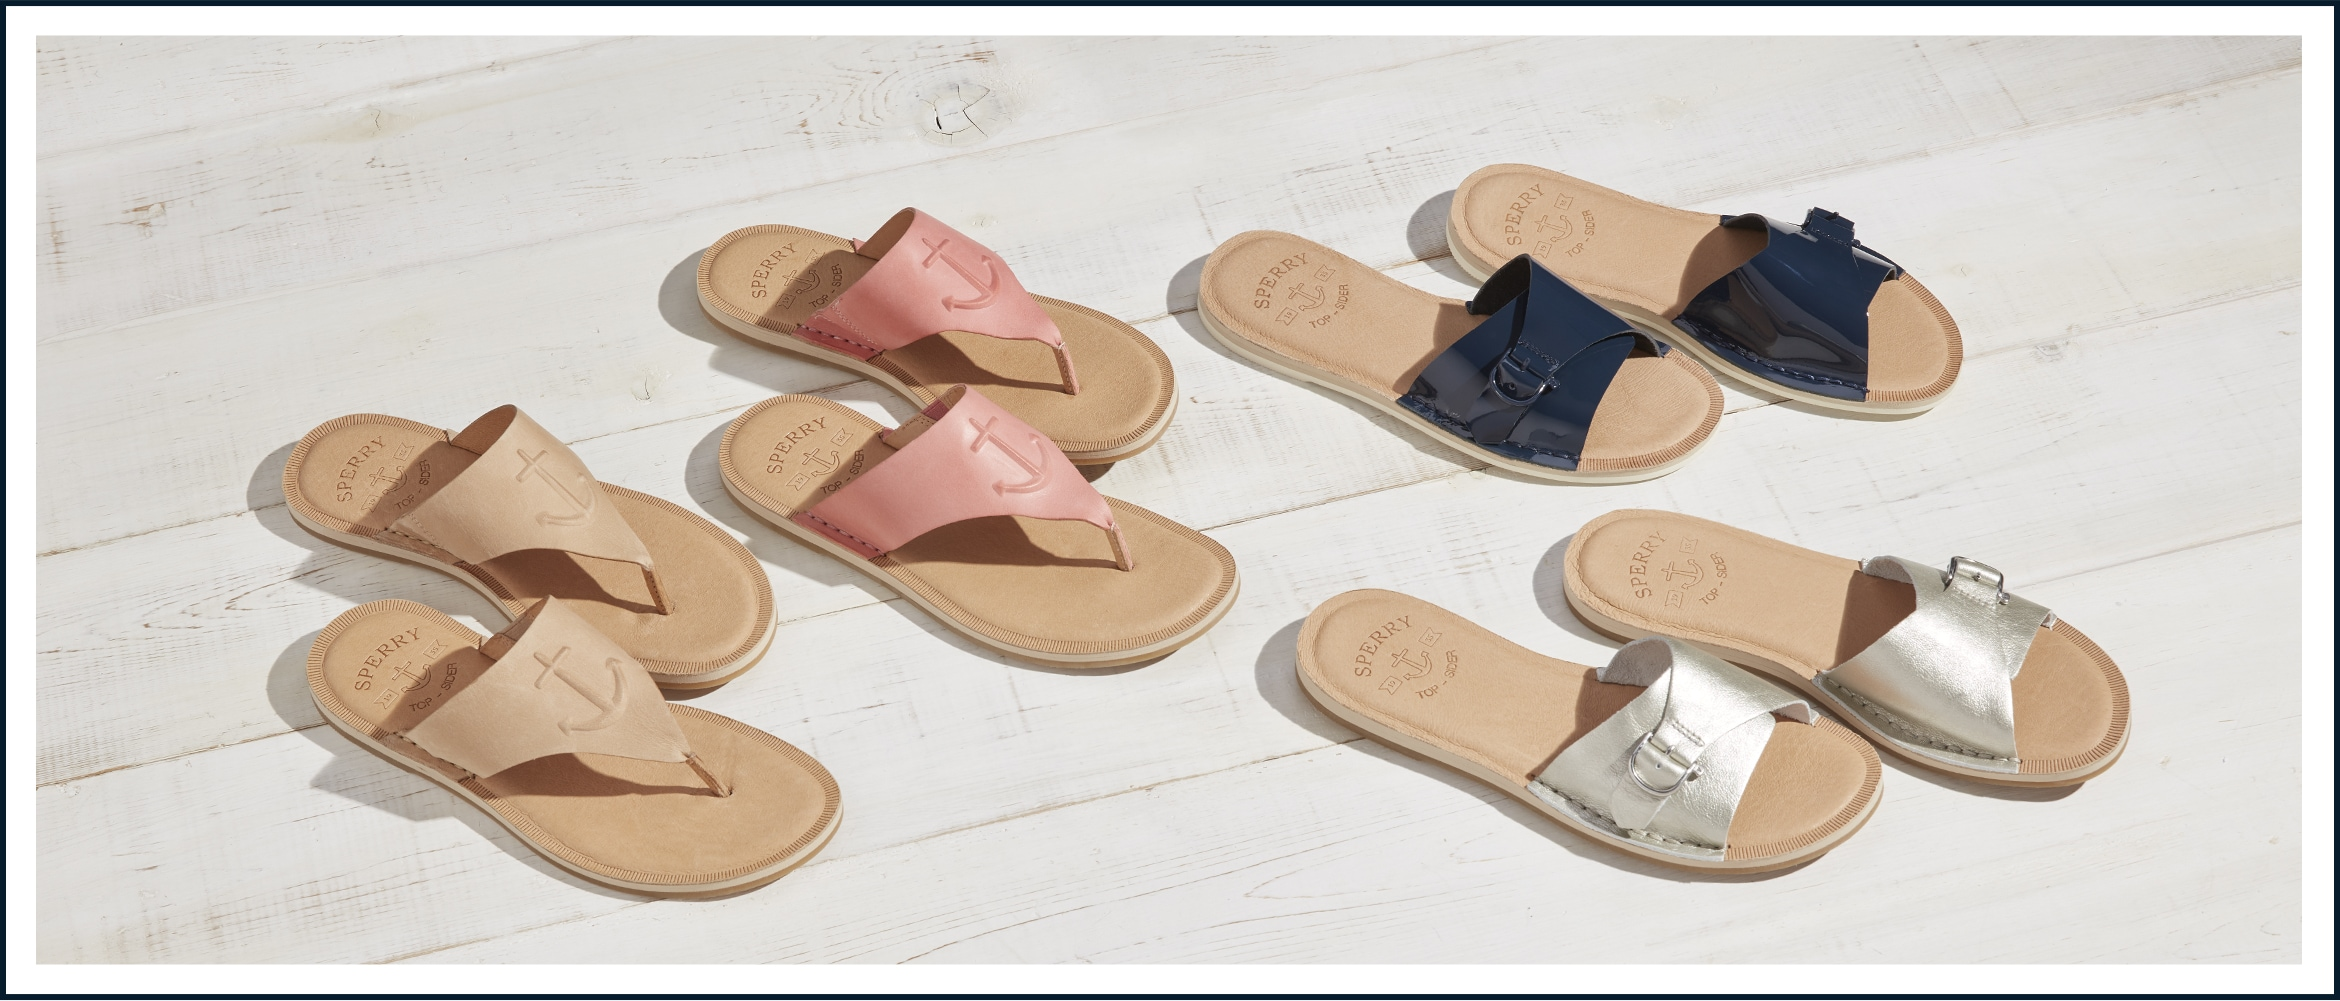 A variety of seaport sandals